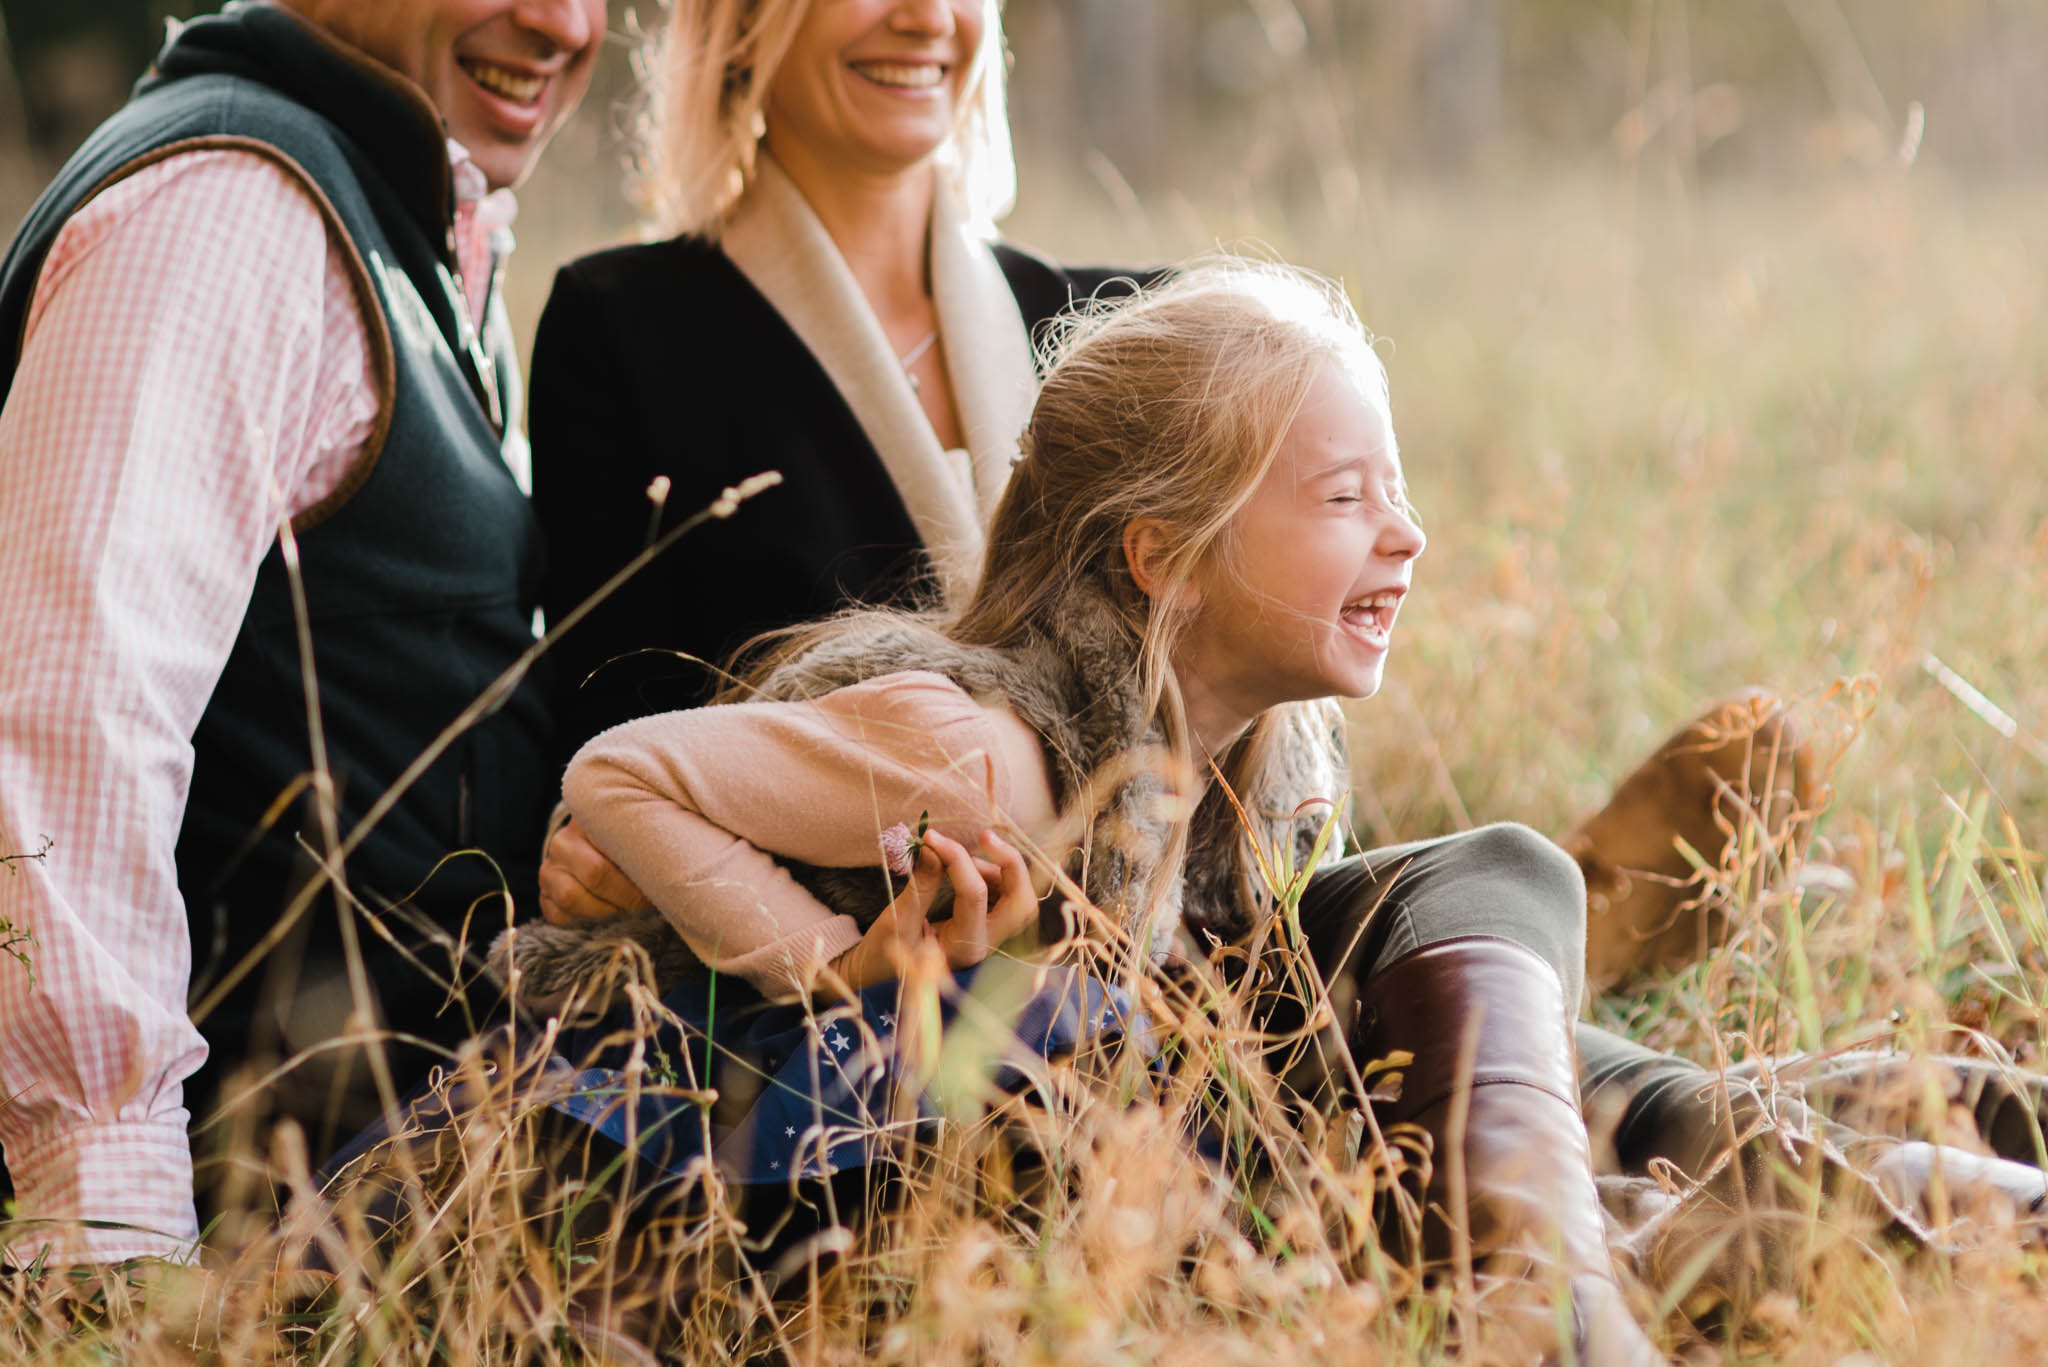 Family of three lauging in fiekd- Cotswold Family Photoshoot.jpg